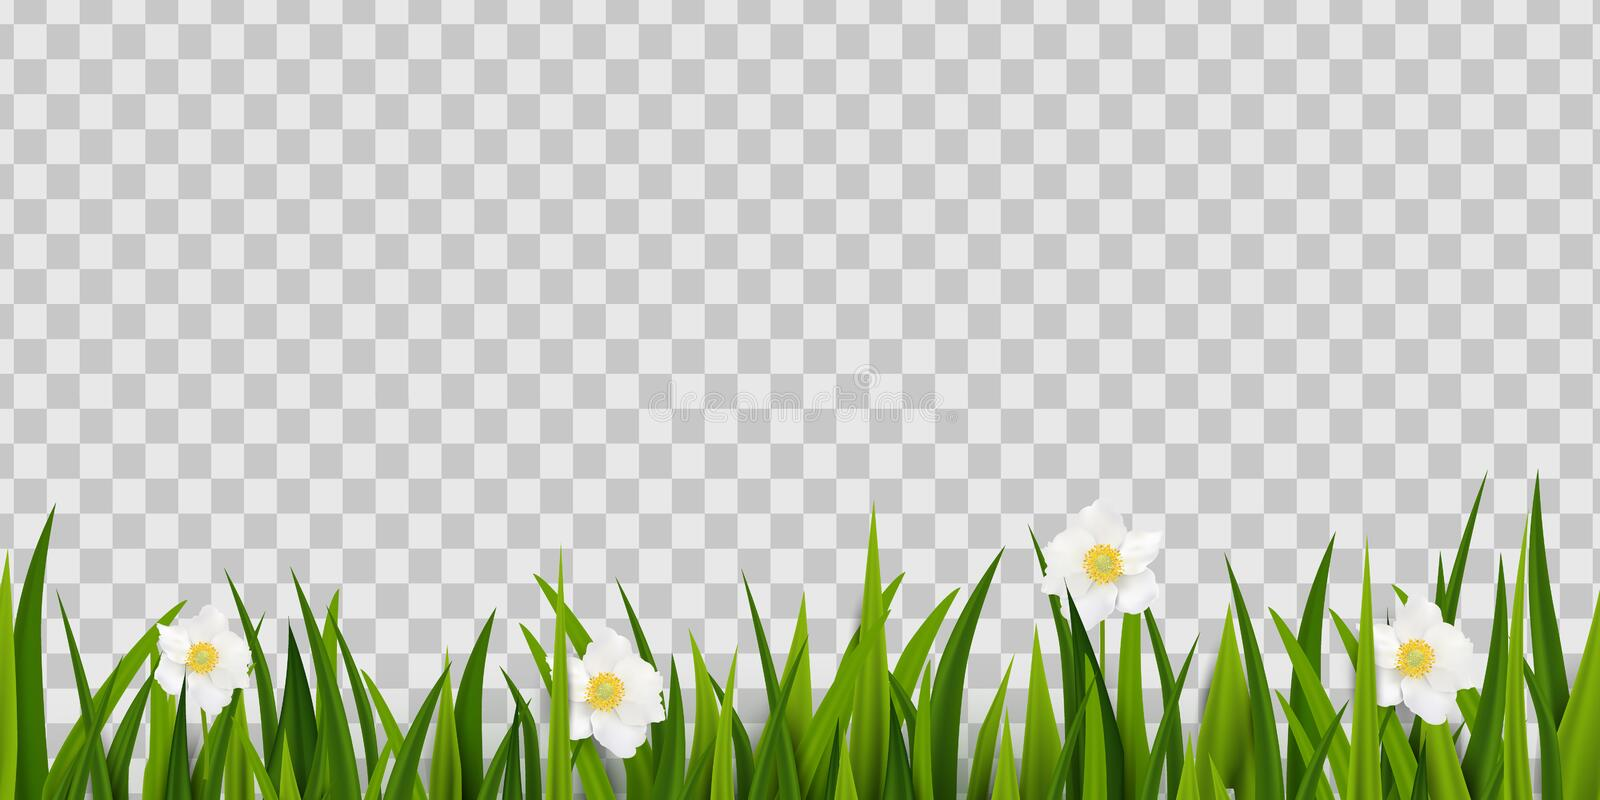 Seamless green grass, spring flowers border isolated on transparent background. Easter greeting card decoration element royalty free illustration